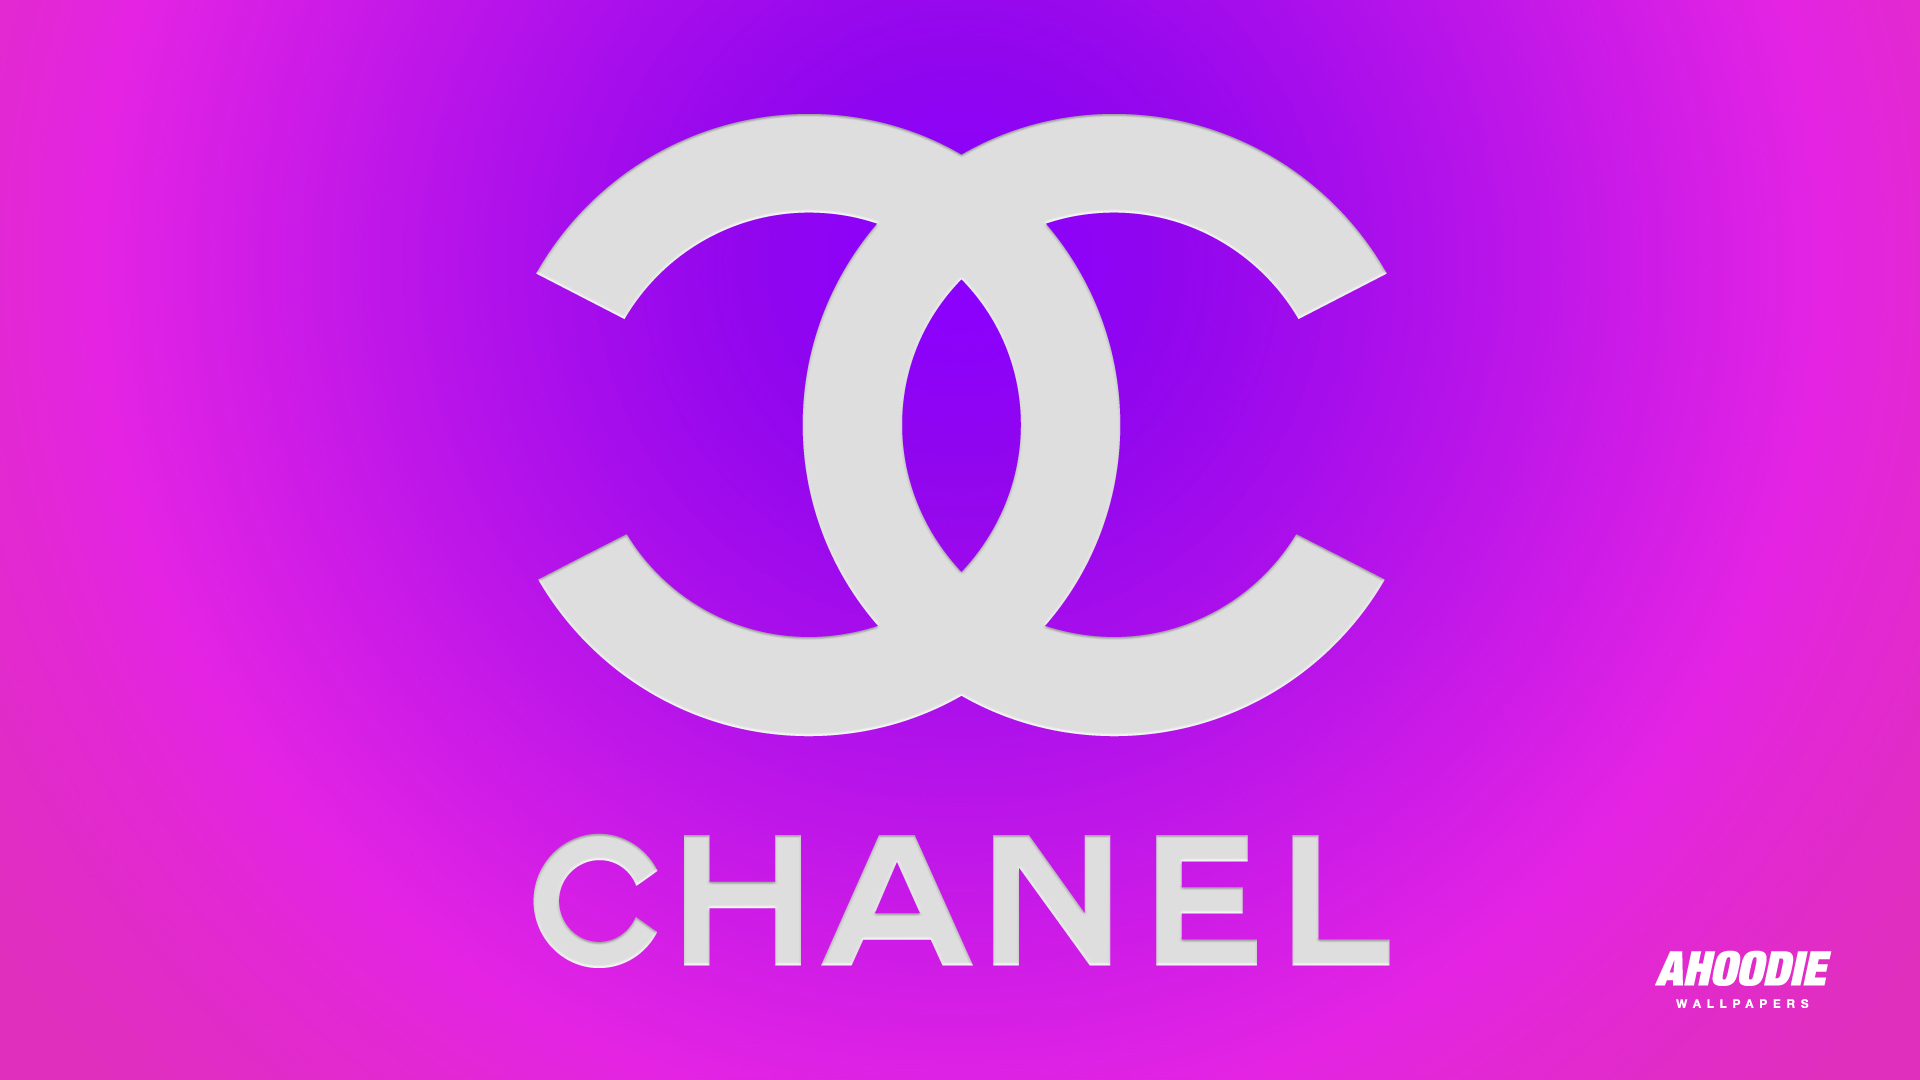 Download Chanel Wallpaper HD Desktop 2014 pictures in high definition 1920x1080